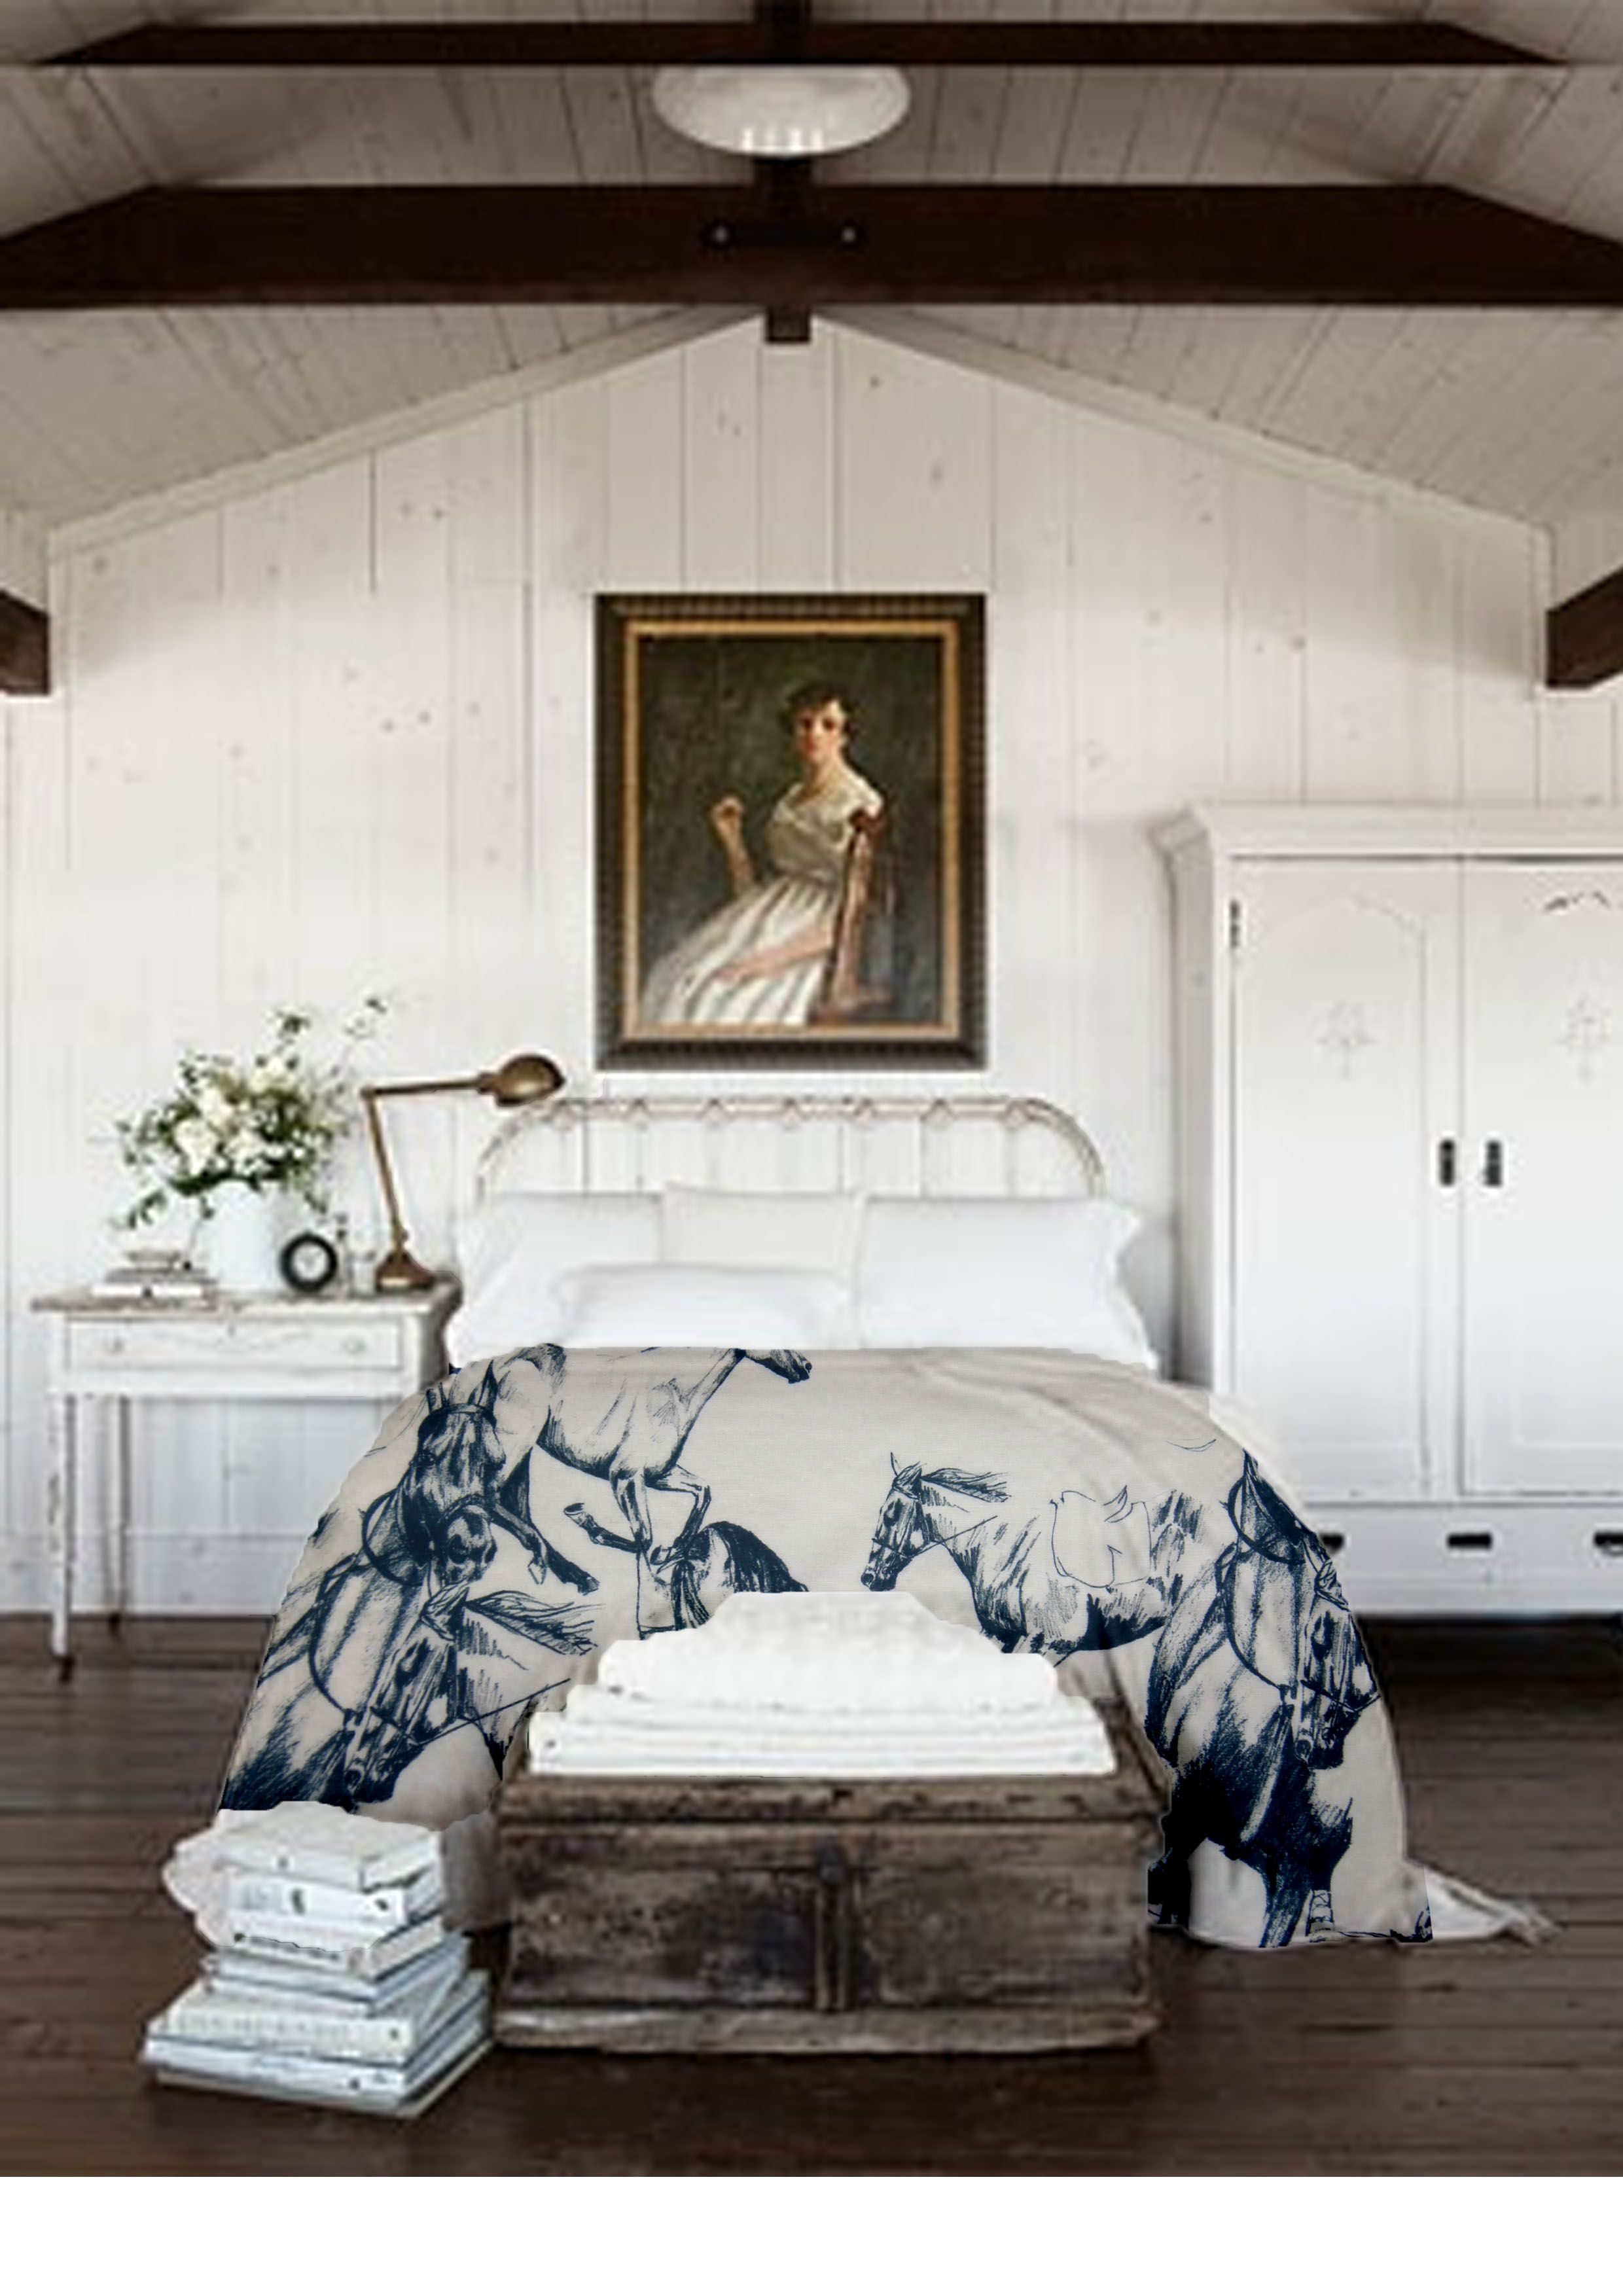 100 Bedroom Decorating Ideas To Suit Every Style Barn Bedrooms White Bedroom Bedroom Decor